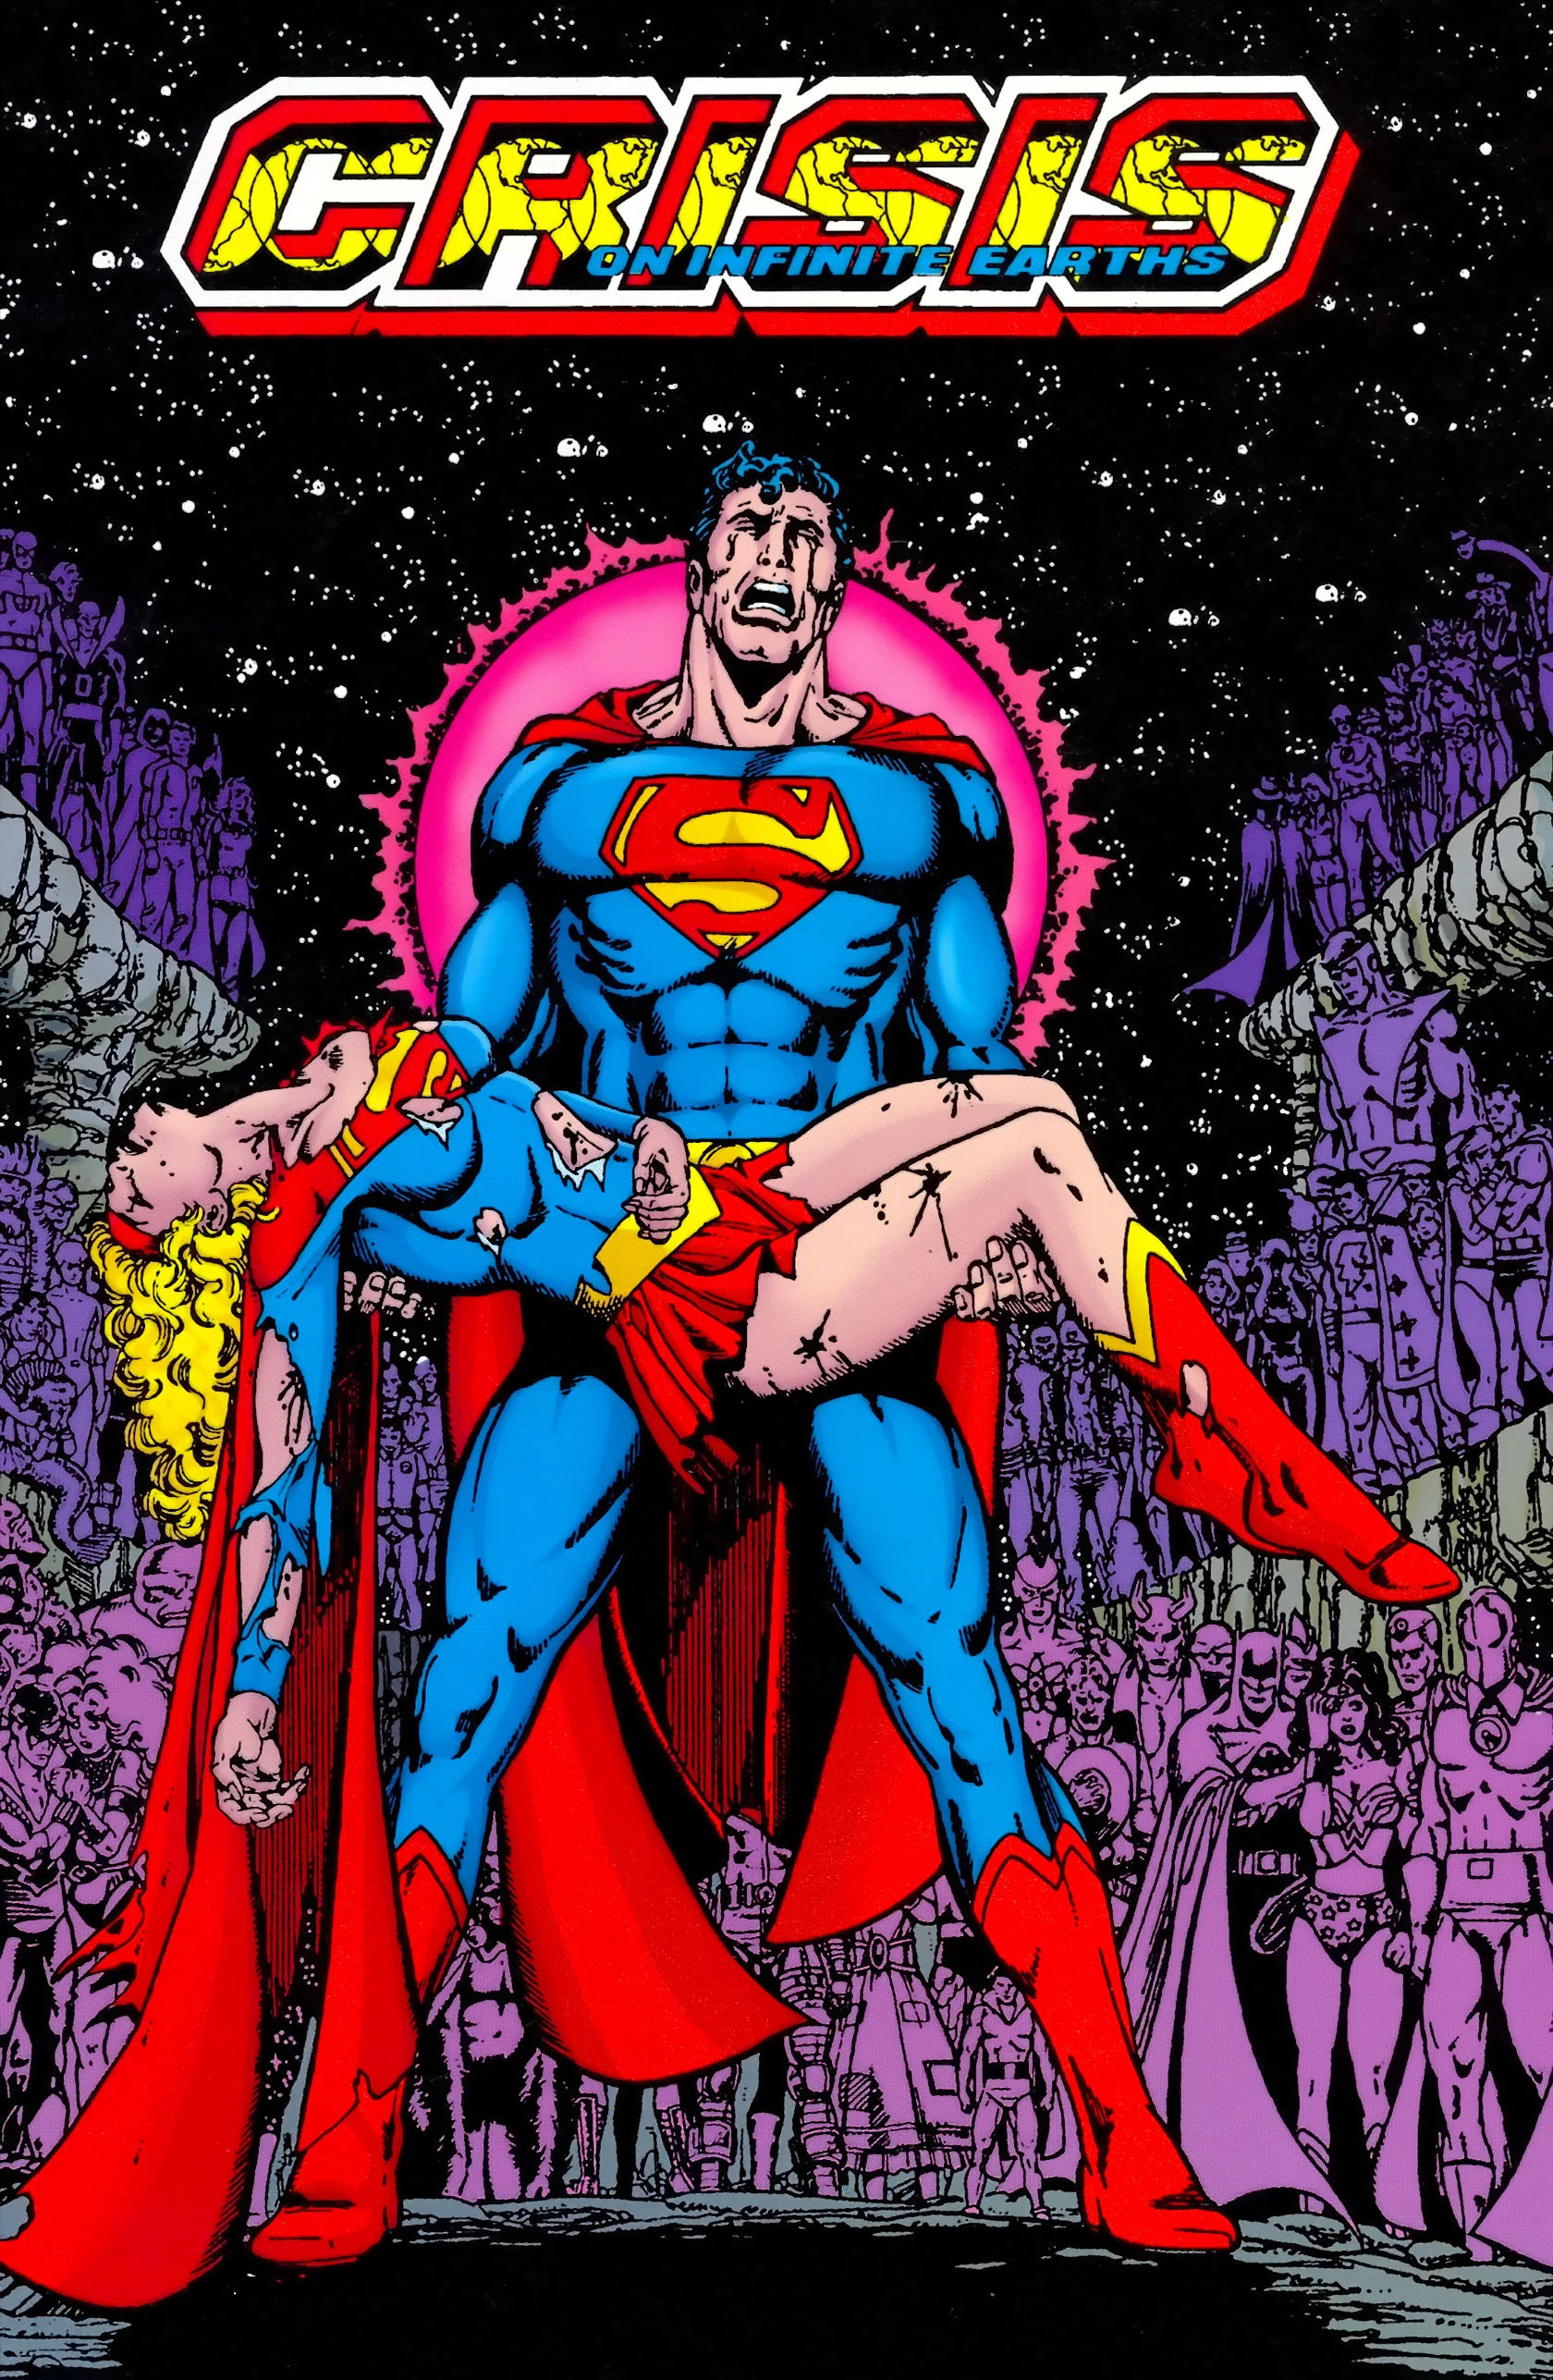 Iconic Comic Book Artist George Perez Announces His Retirement